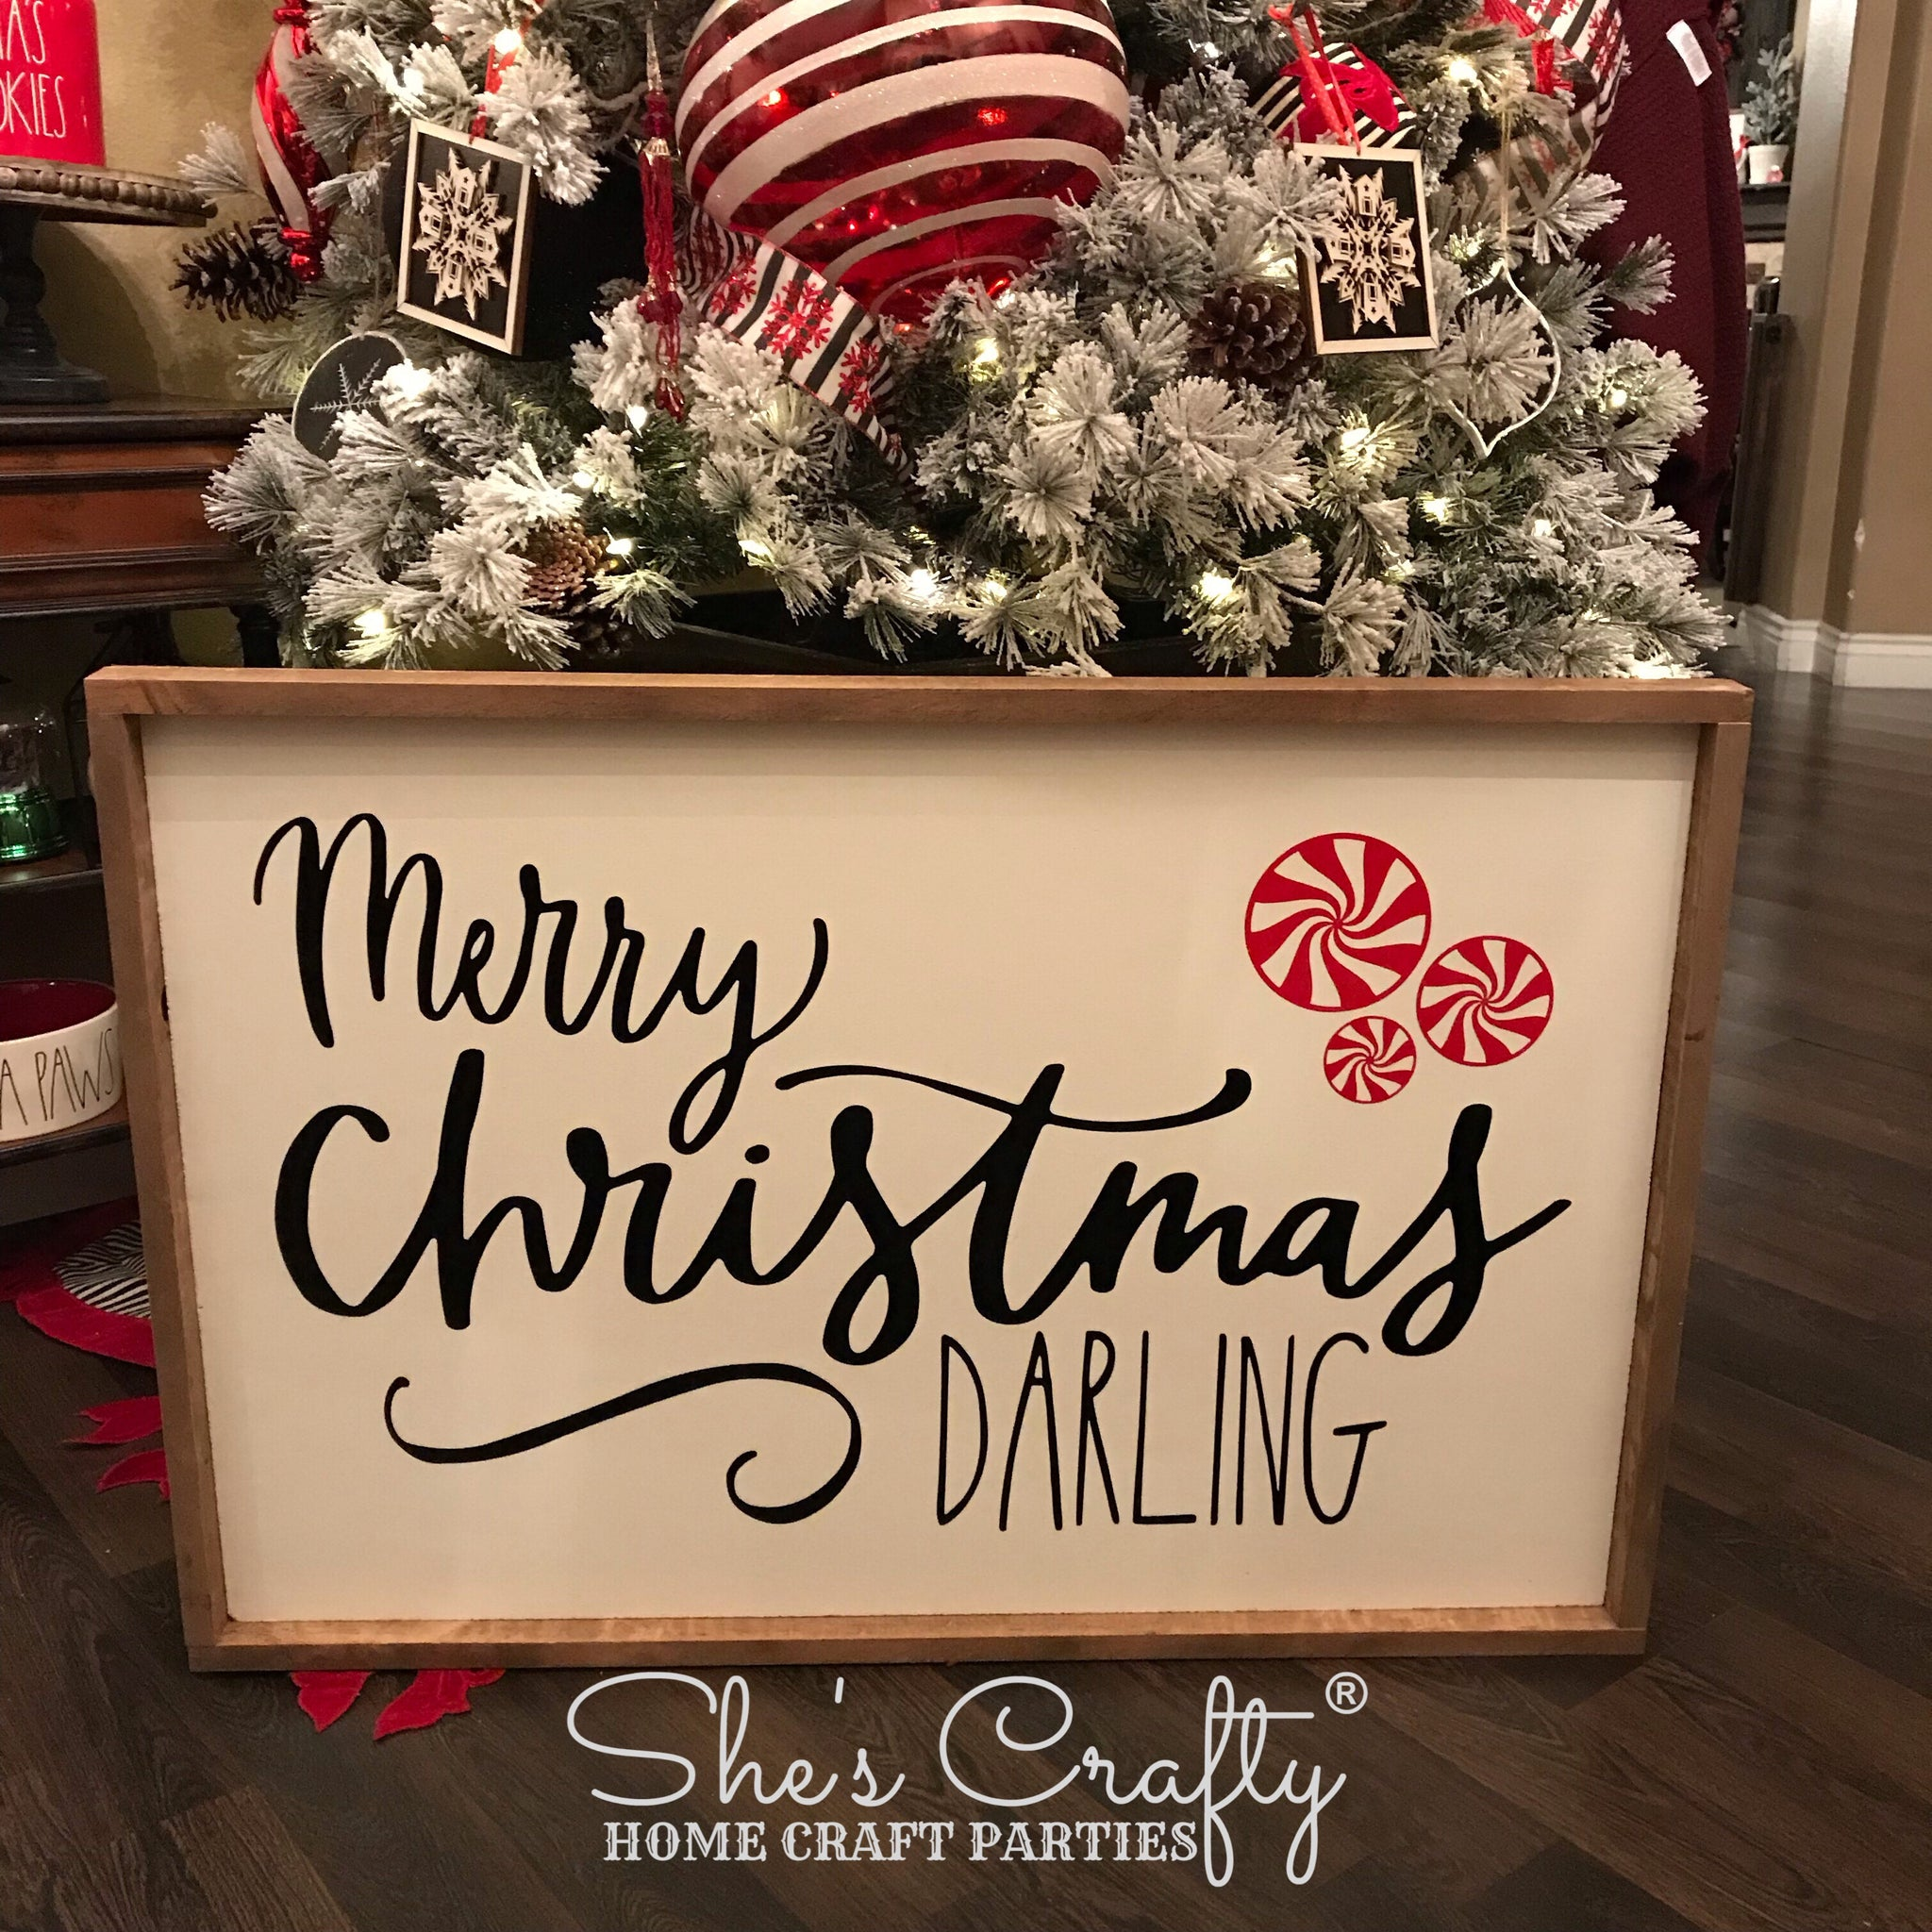 Merry Christmas Darling.Merry Christmas Darling Kit She S Crafty Home Craft Parties